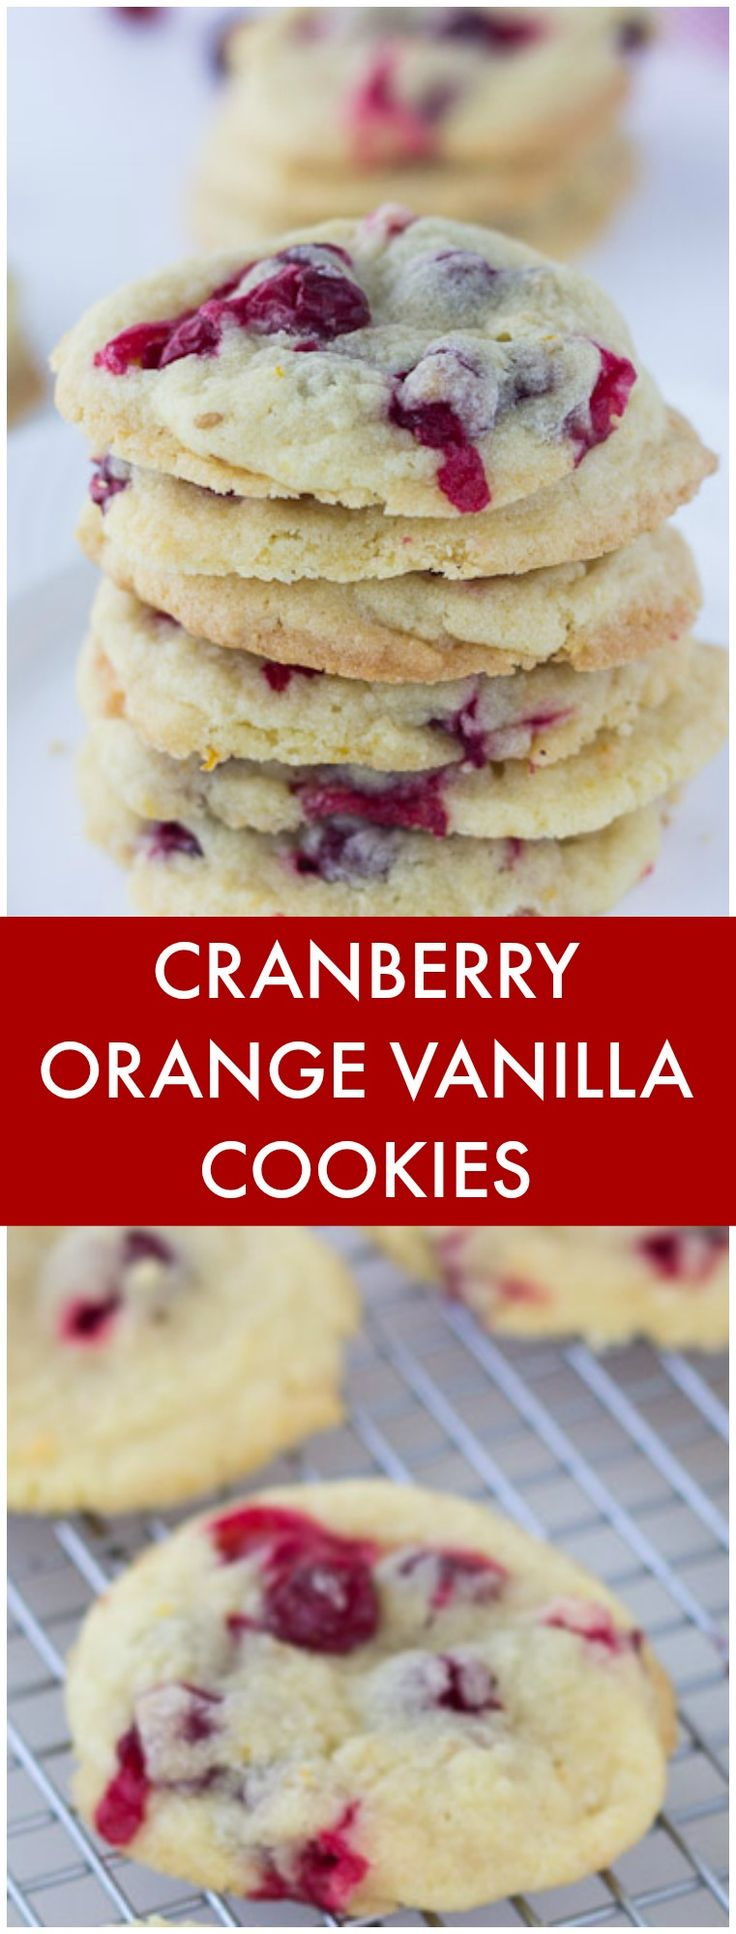 These soft and chewy Cranberry Orange Vanilla Cookies recipe is perfect for the holidays and it starts with a box mix of vanilla sugar cookies.